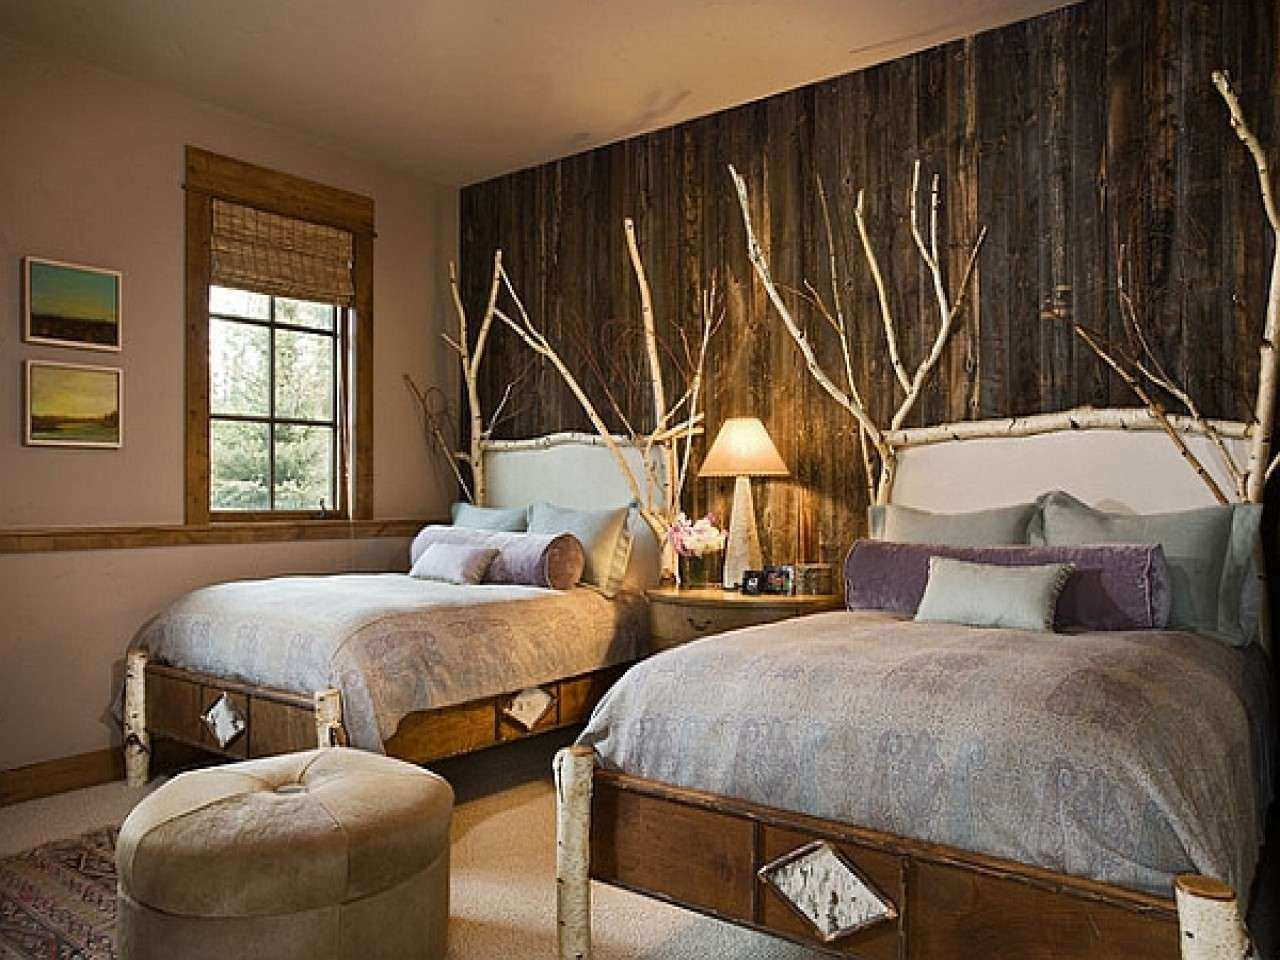 Decorating ideas for small master bedrooms rustic wood